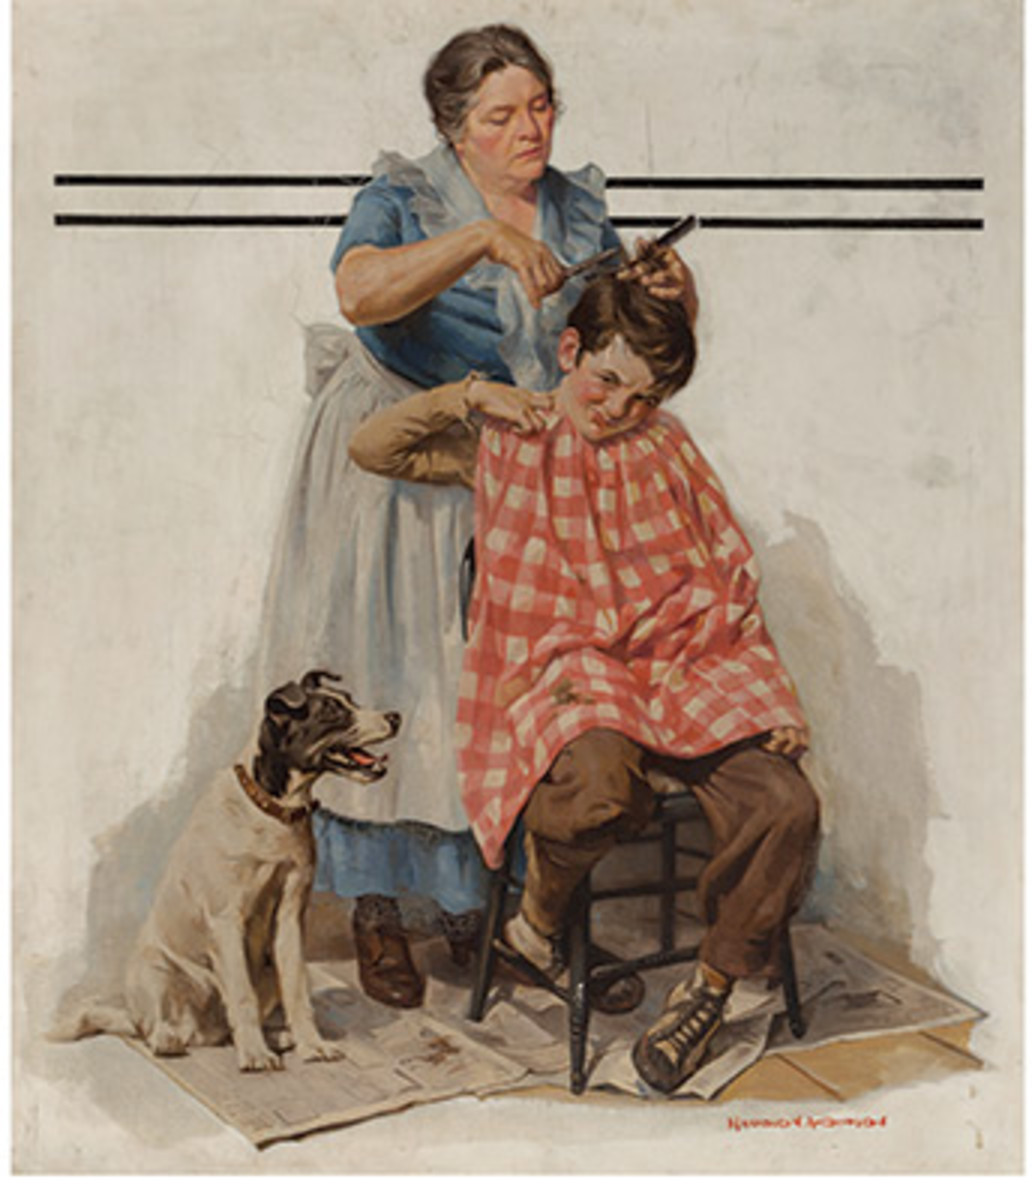 Harold AndersonKitchen Haircut, The Saturday Evening Post cover, November 11, 1933, sold for $30,000 and was also a new record for the artist.